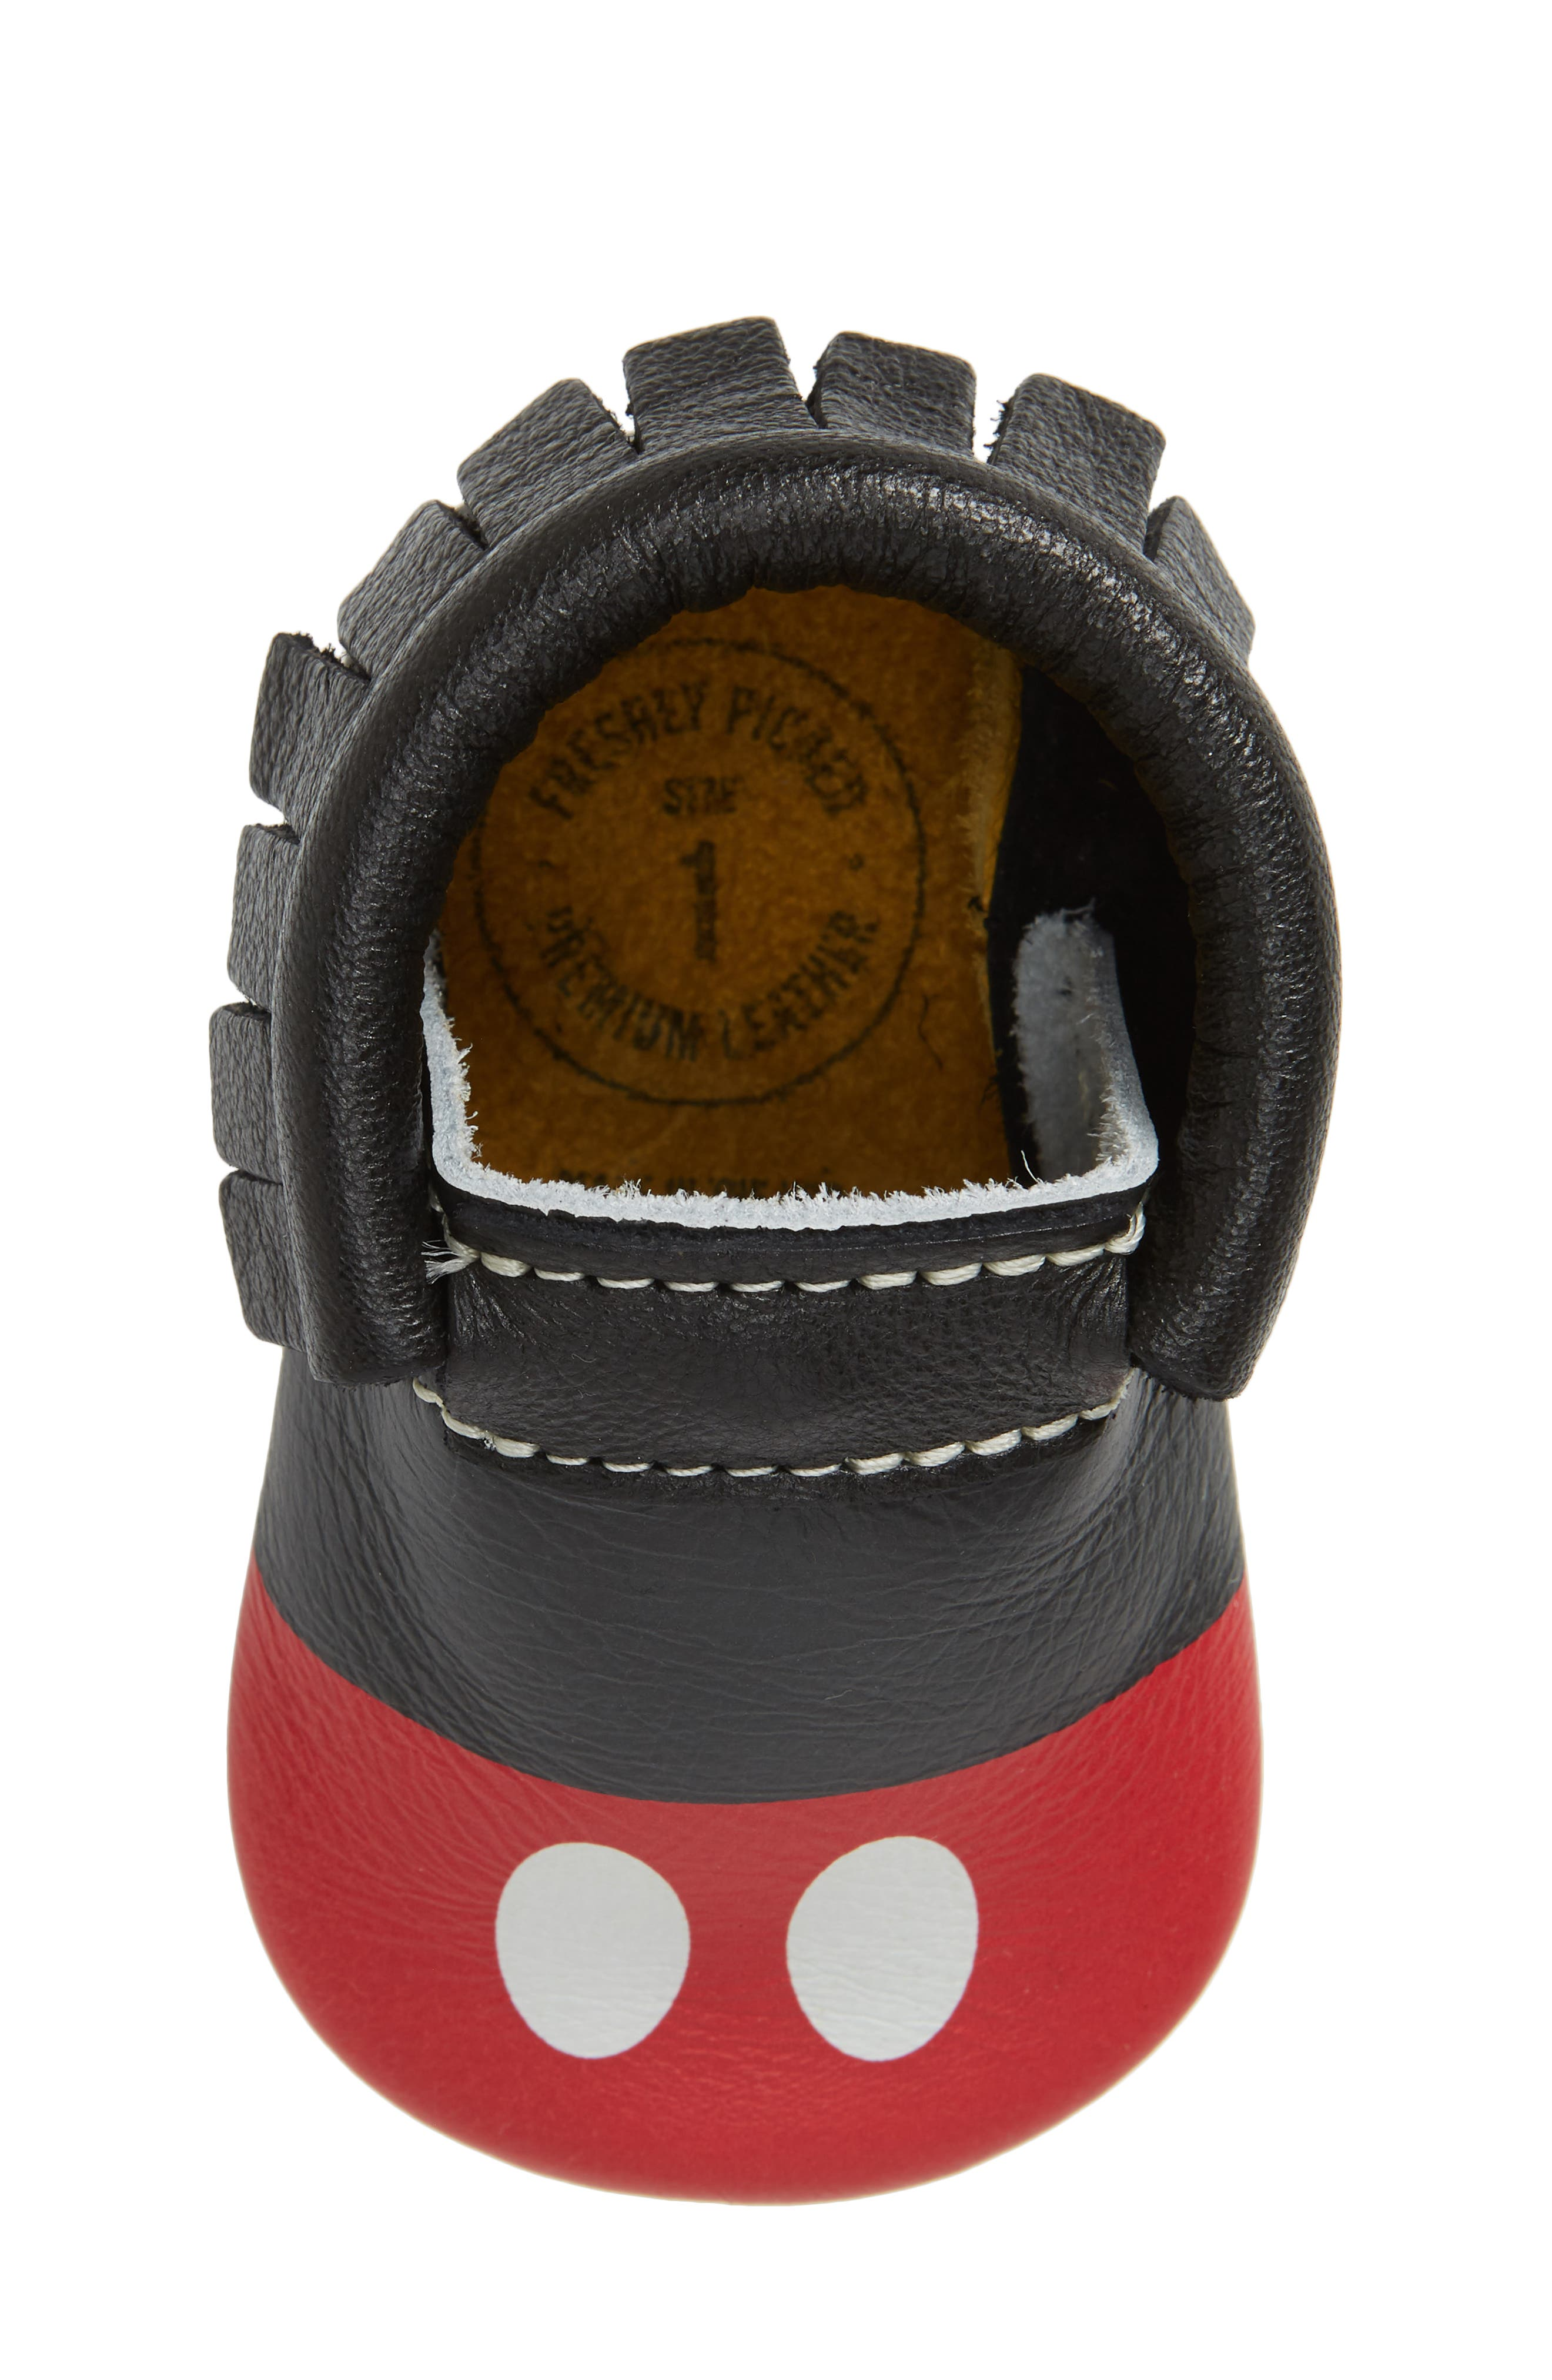 x Disney<sup>®</sup> Baby Mickey Mousee Crib Moccasin,                             Alternate thumbnail 5, color,                             001